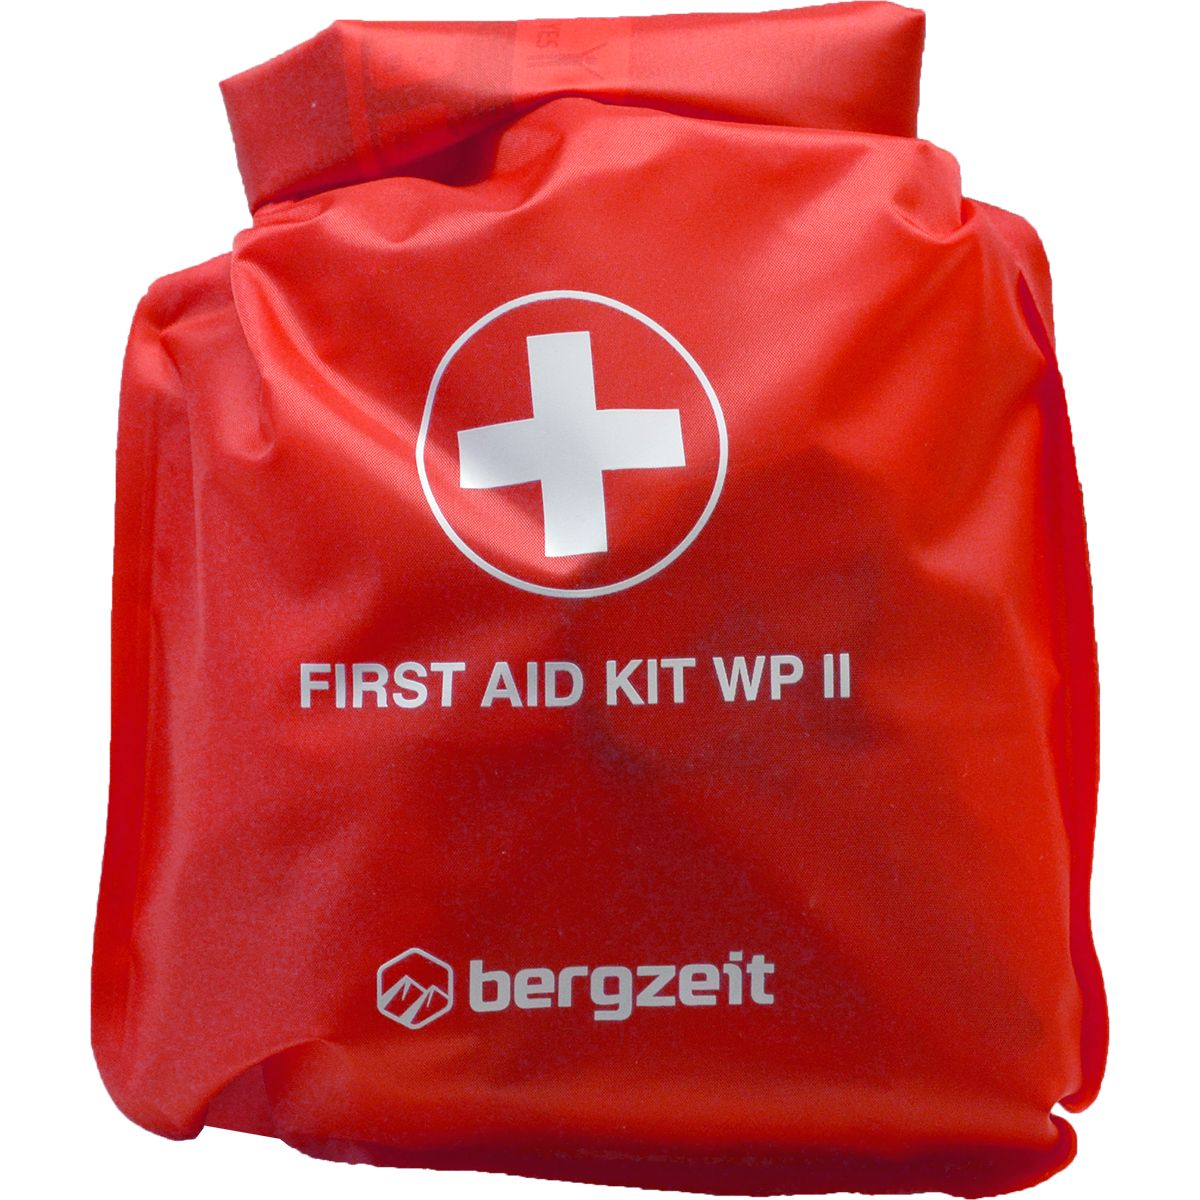 Image of LACD Bergzeit First Aid Kit WP II (Rot)